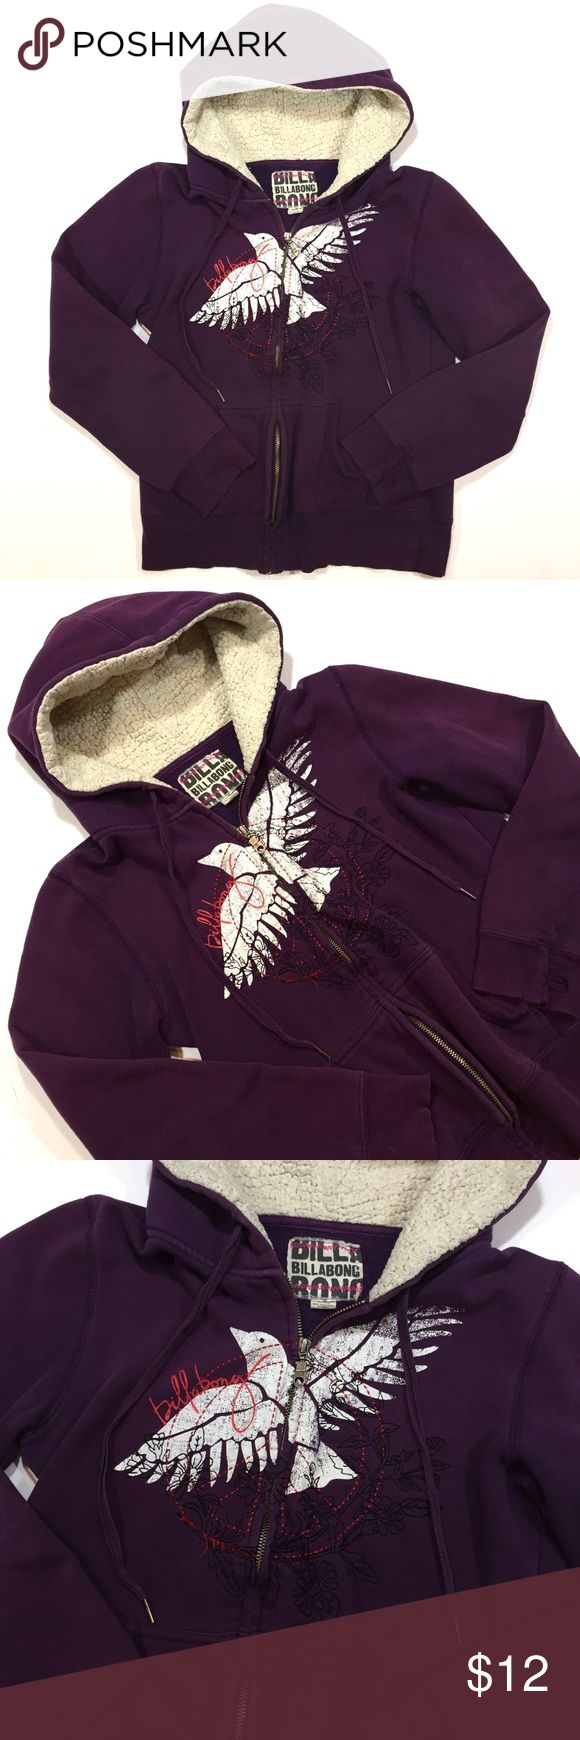 "Women's purple hood sweatshirt by Billabong - MED Girls purple hooded sweatshirt by Billabong. Cute stitched flower design along with white dove on front.  Quality metal zipper and handle has Billabong logo. Size Medium. Material: 97% Cotton, 3% Spandex. Pre-loved but has plenty of use left. There is slight wear on the sleeves (as shown in photos).   Measurements: Length - 23"" Top of Shoulder to sleeve - 23"" Armpit to armpit - 18.5"" Billabong Tops Sweatshirts & Hoodies"